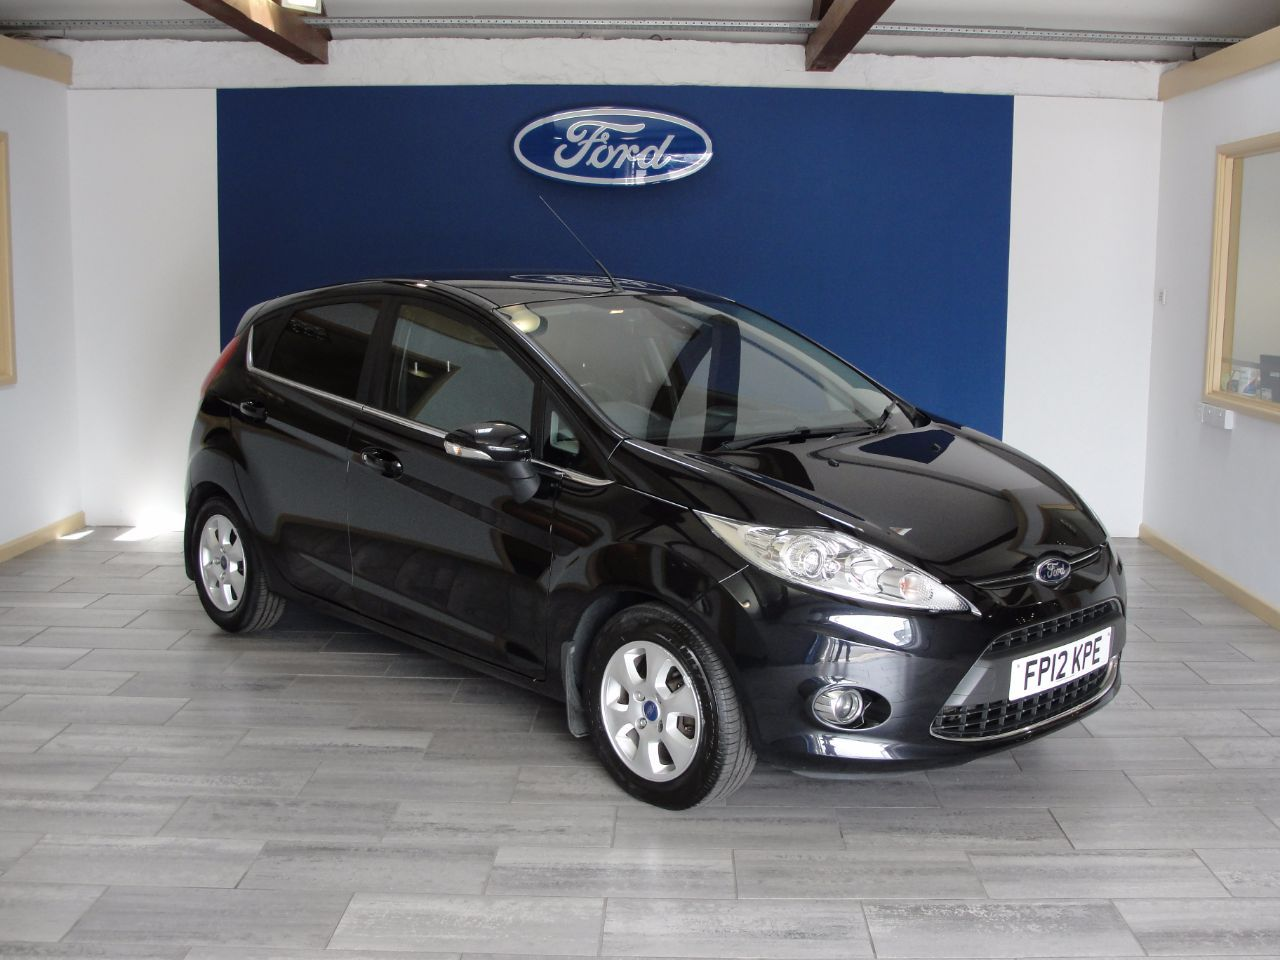 Ford Fiesta 1 6 Tdci 95 Titanium Econetic 5dr Hatchback